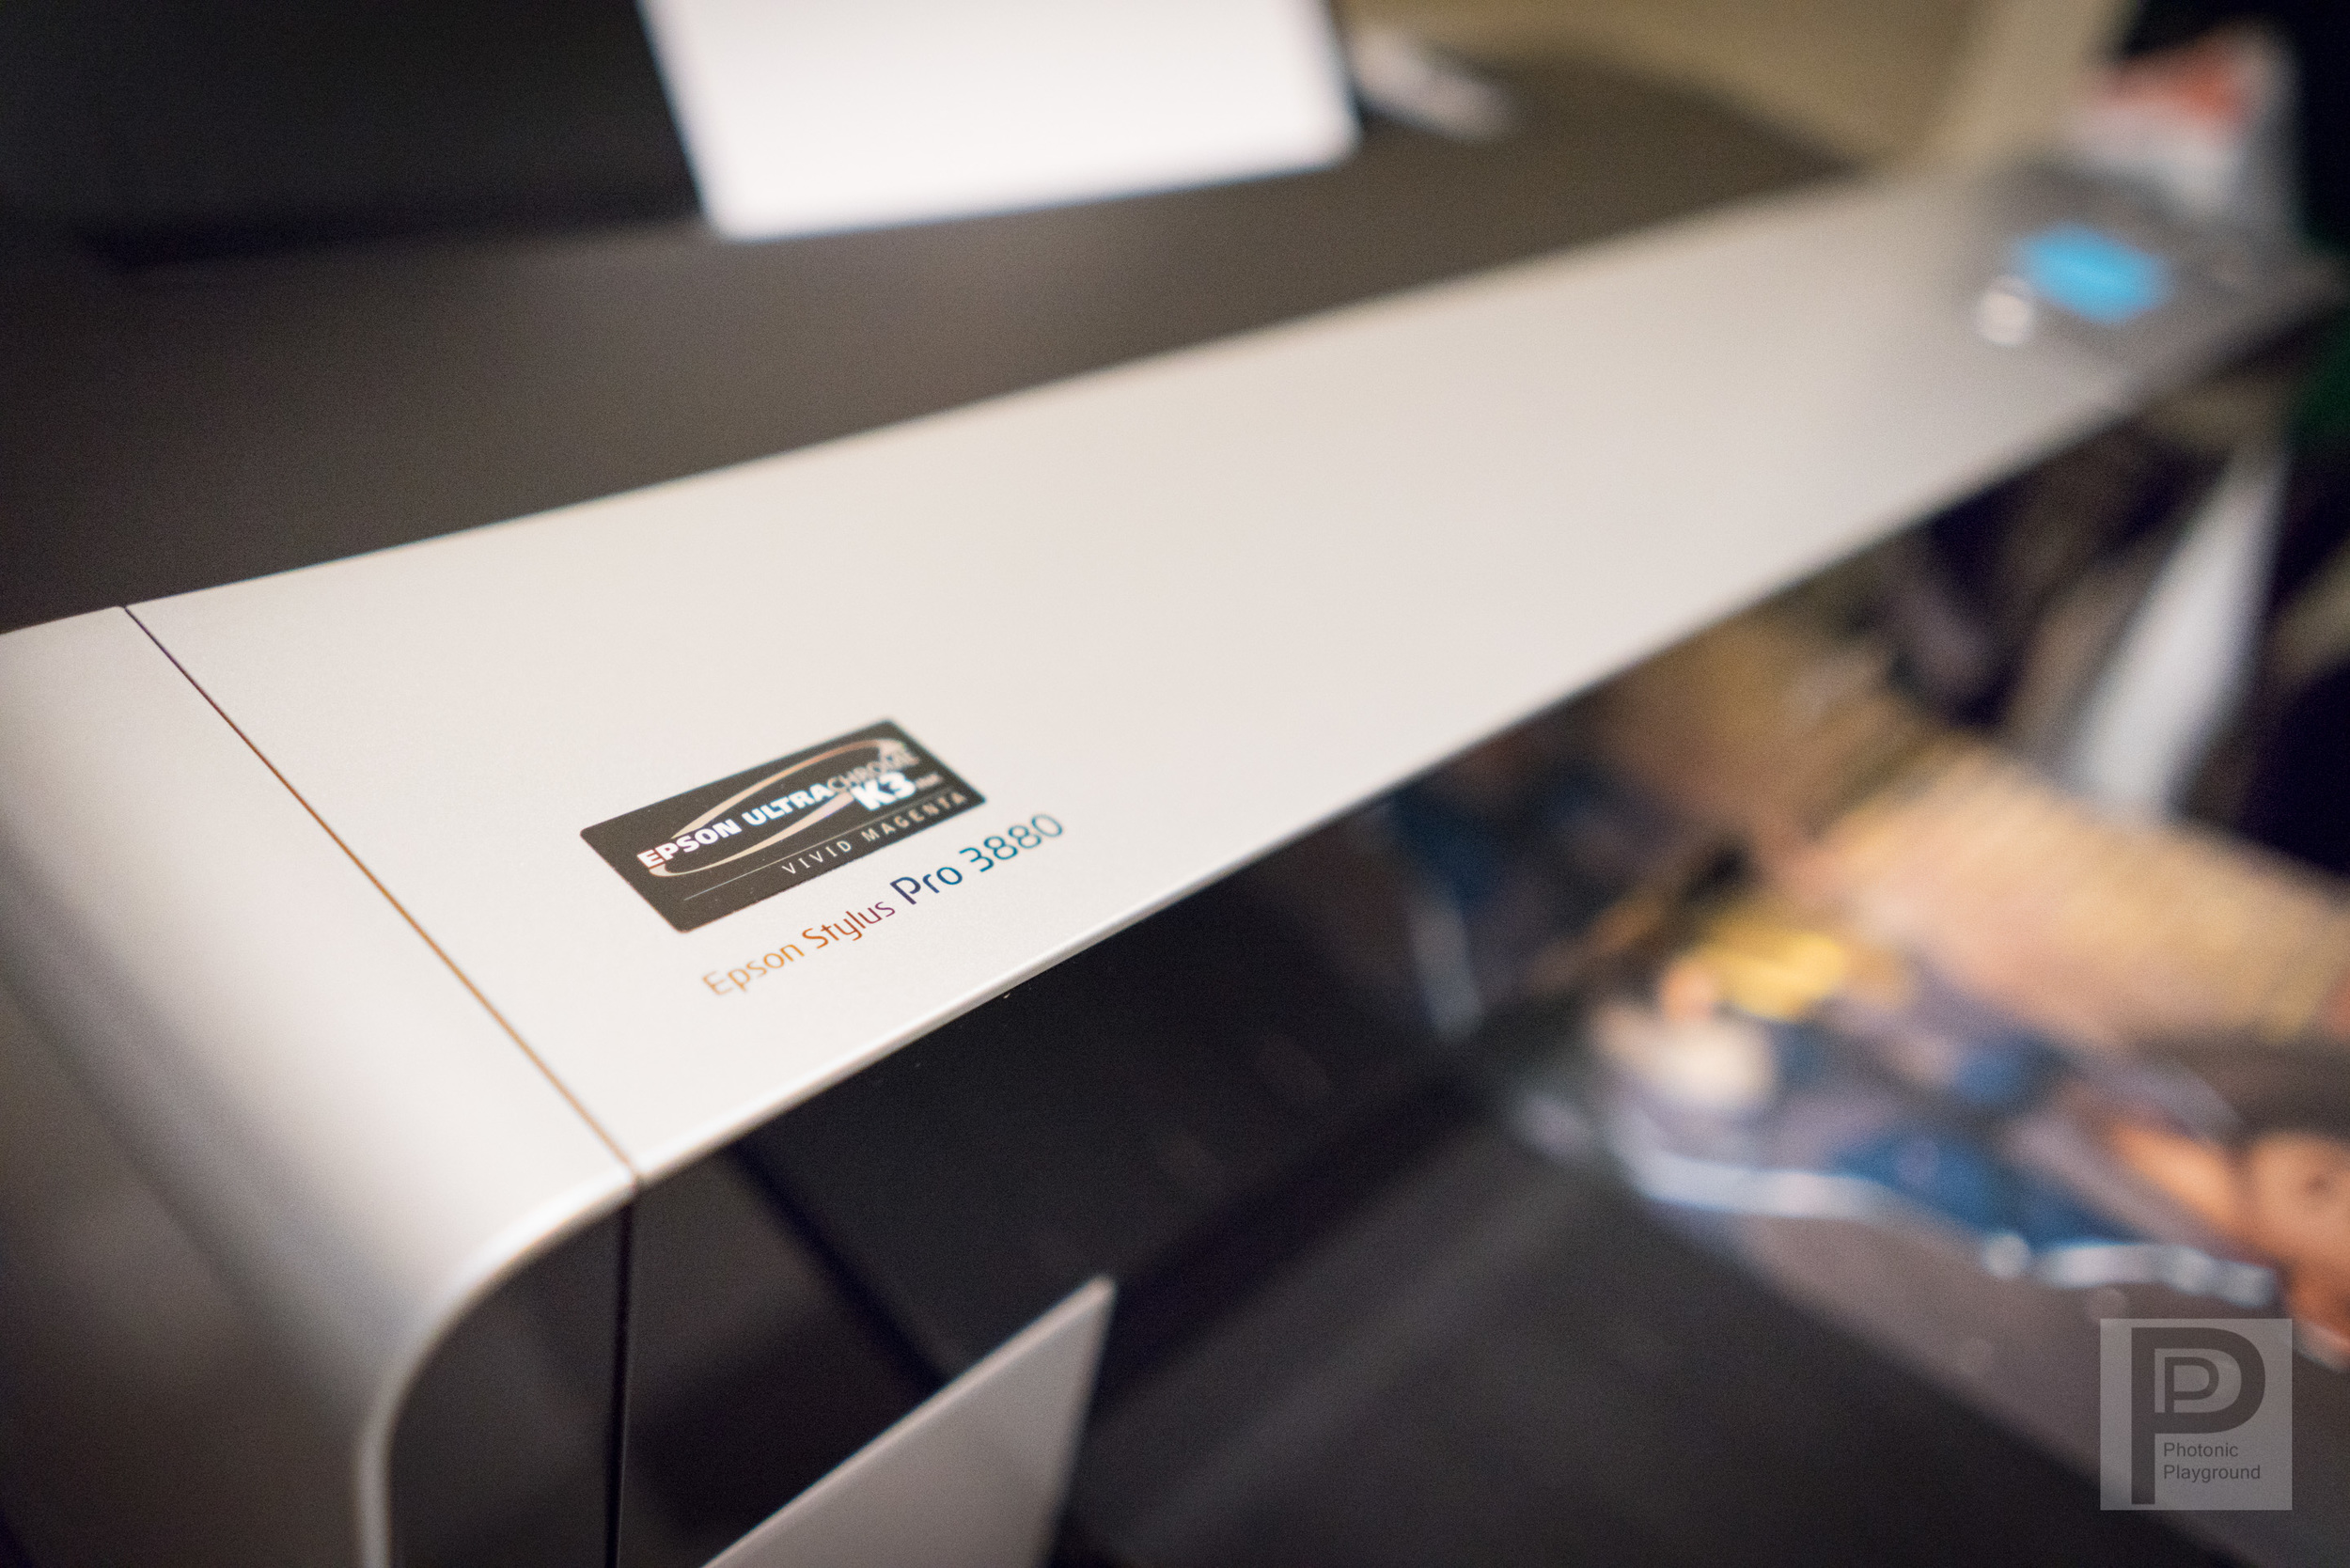 "This is our other gallery fine art printers, the Epson Stylus Pro 3880, capable of borderless prints up to 17"" in width."